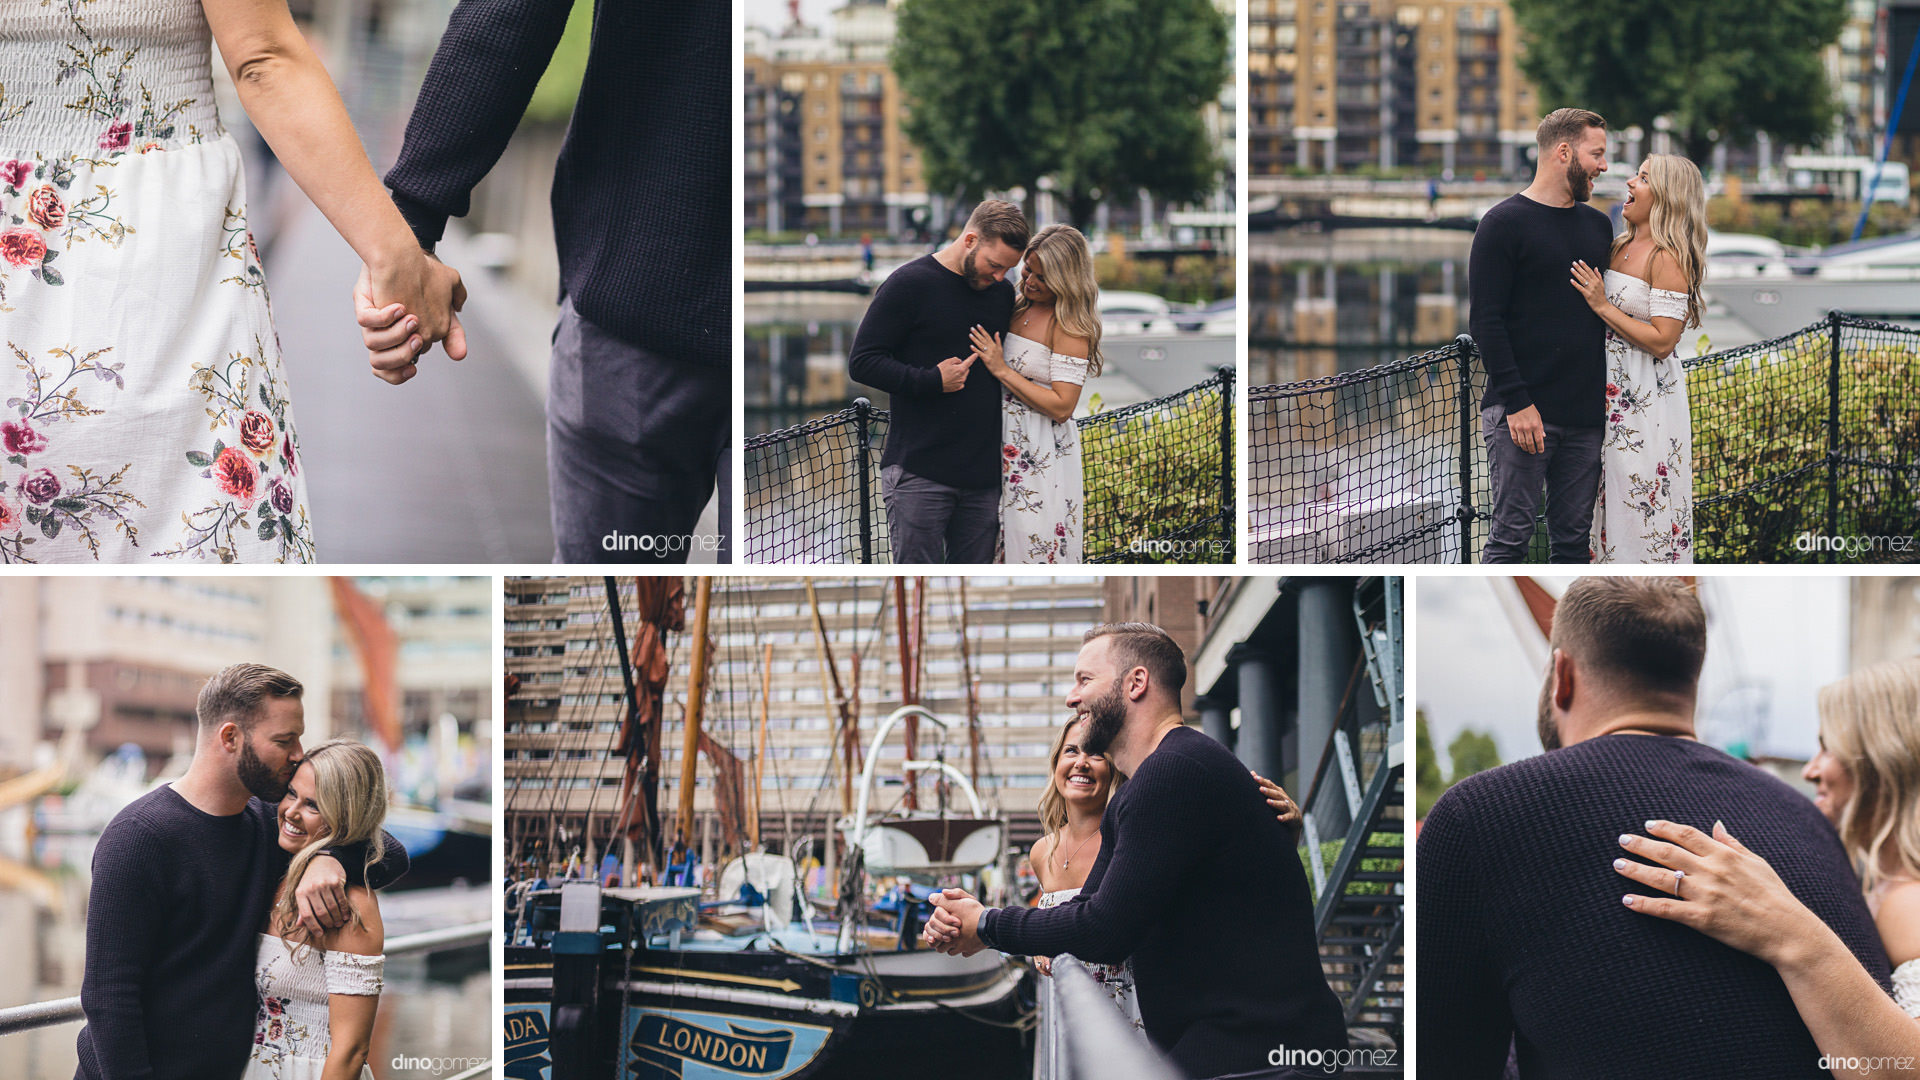 Engagement Session Photographer In London Tower Bridge And St Katharine'S Dock Photo Session - A+T-424